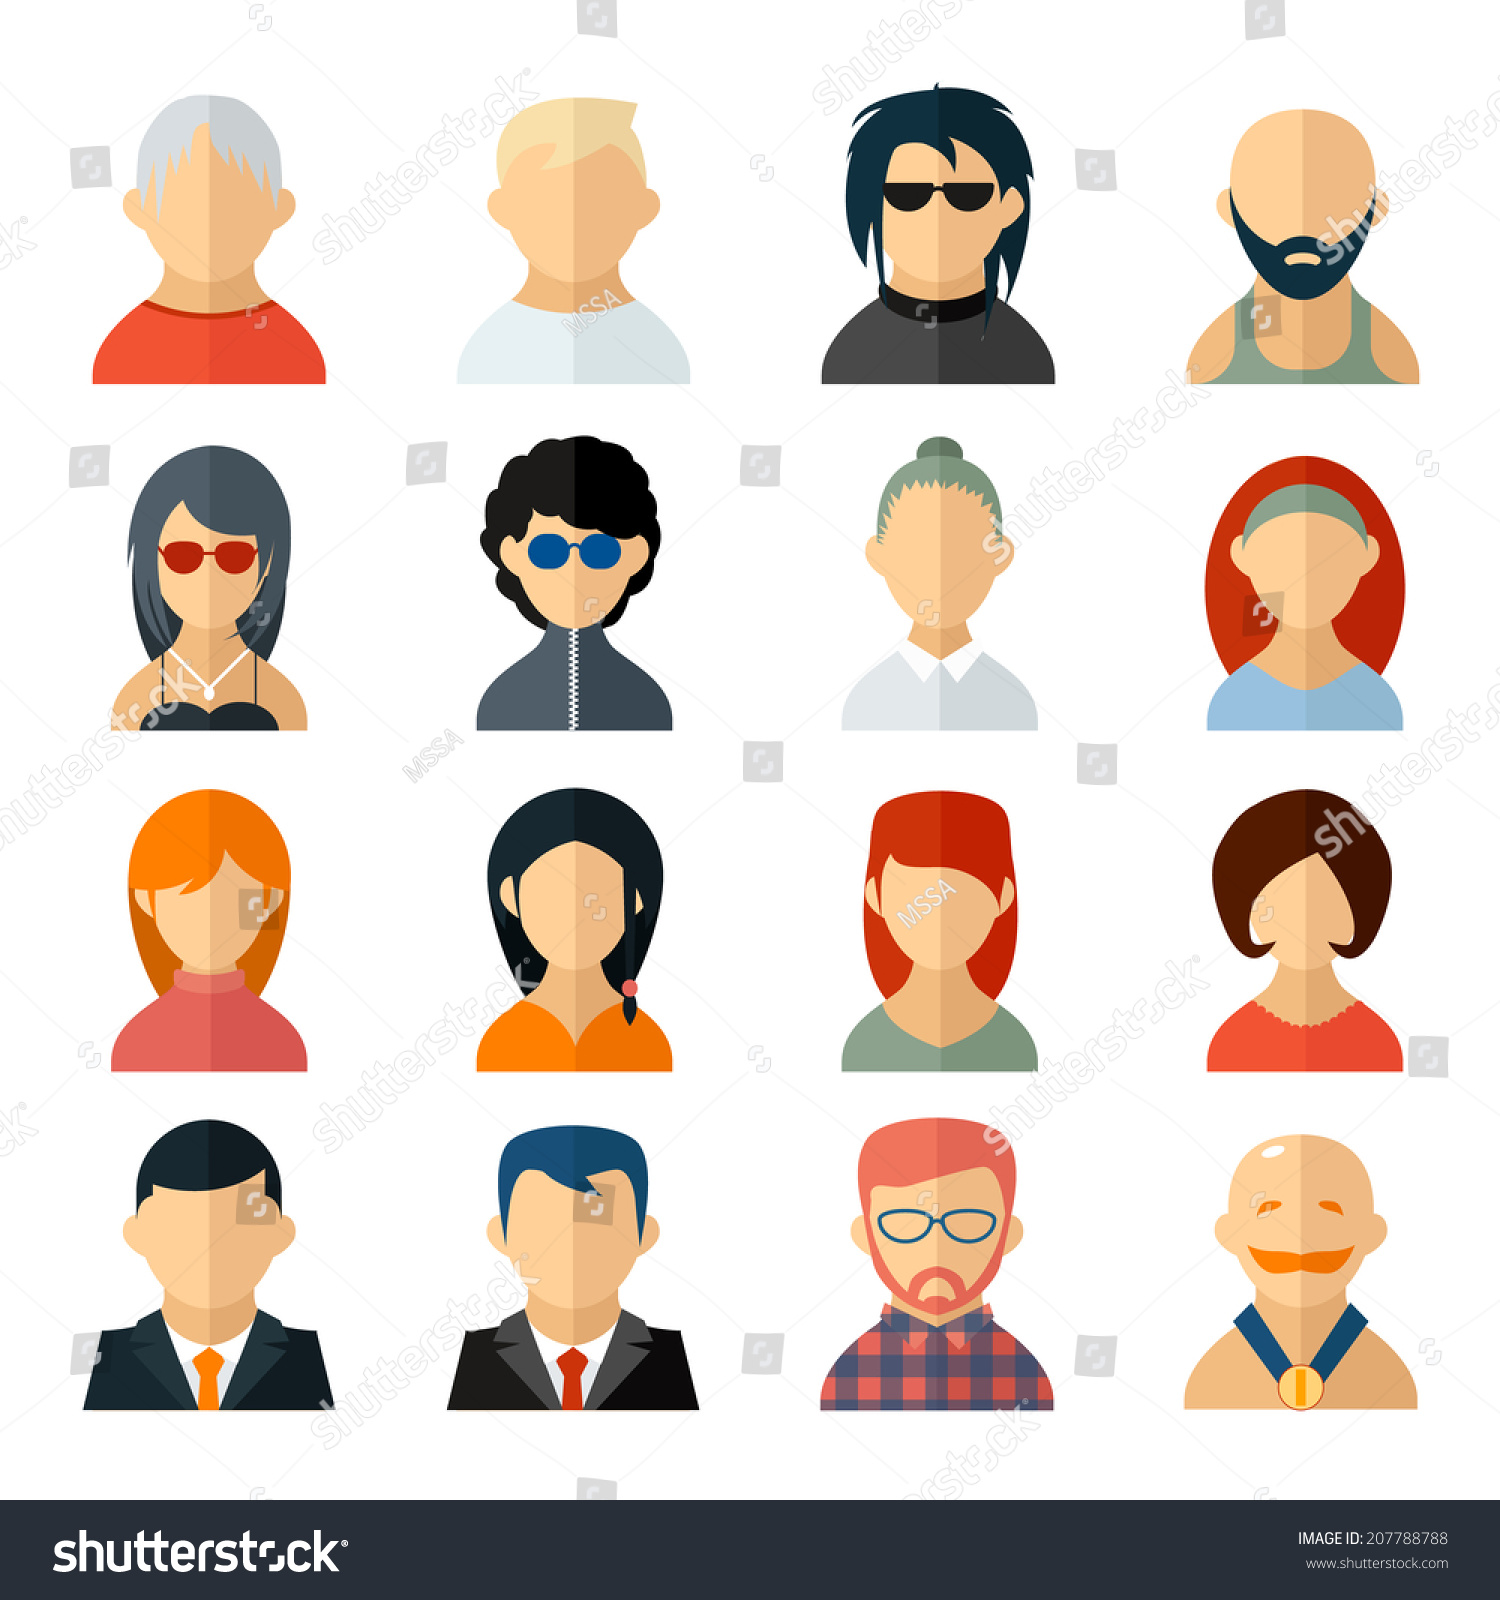 Royalty Free Set Of User Avatar Icons In Flat Style